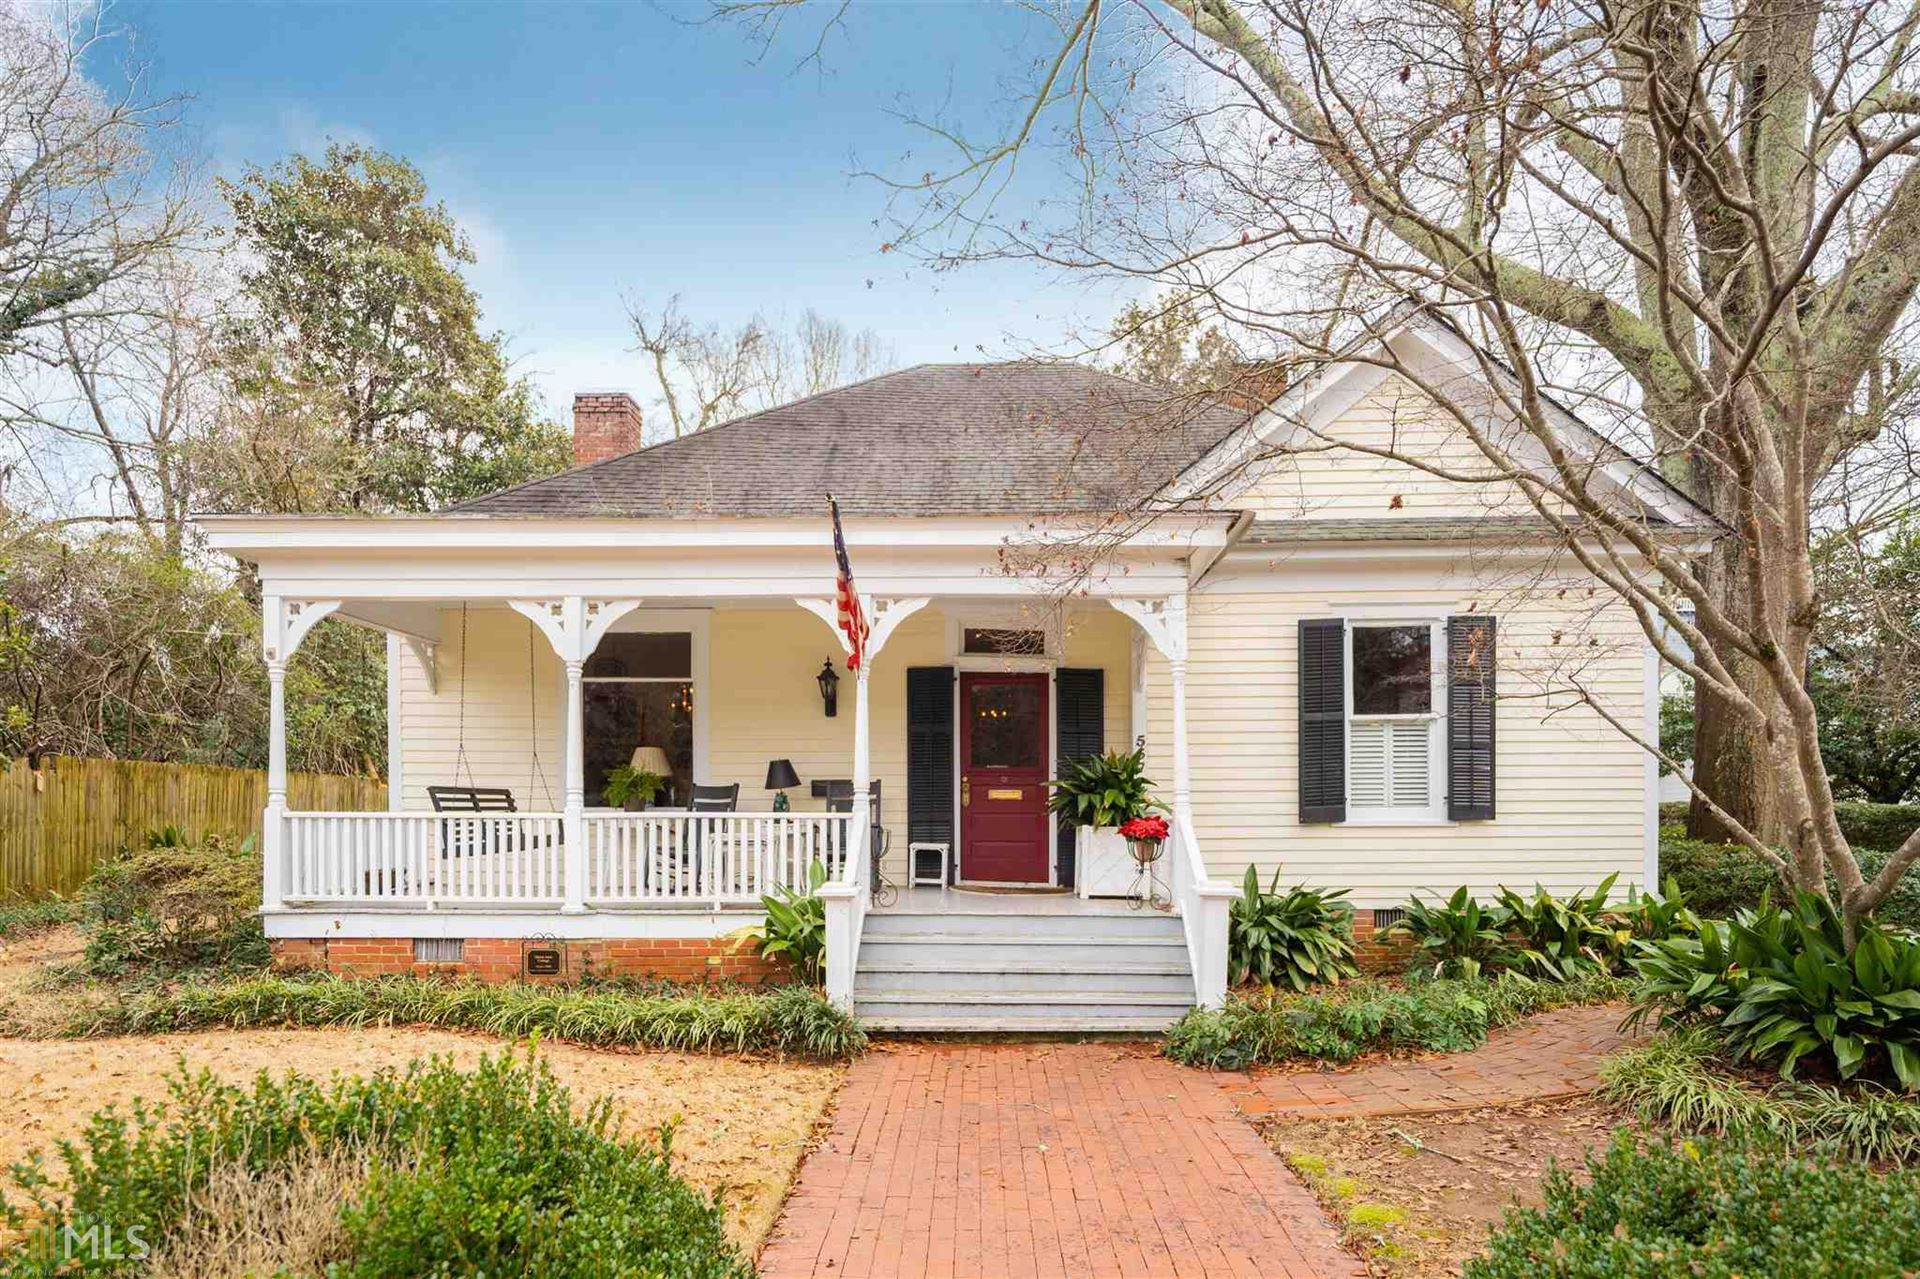 Photo of 557 Academy St, Madison, GA 30650 (MLS # 8912786)